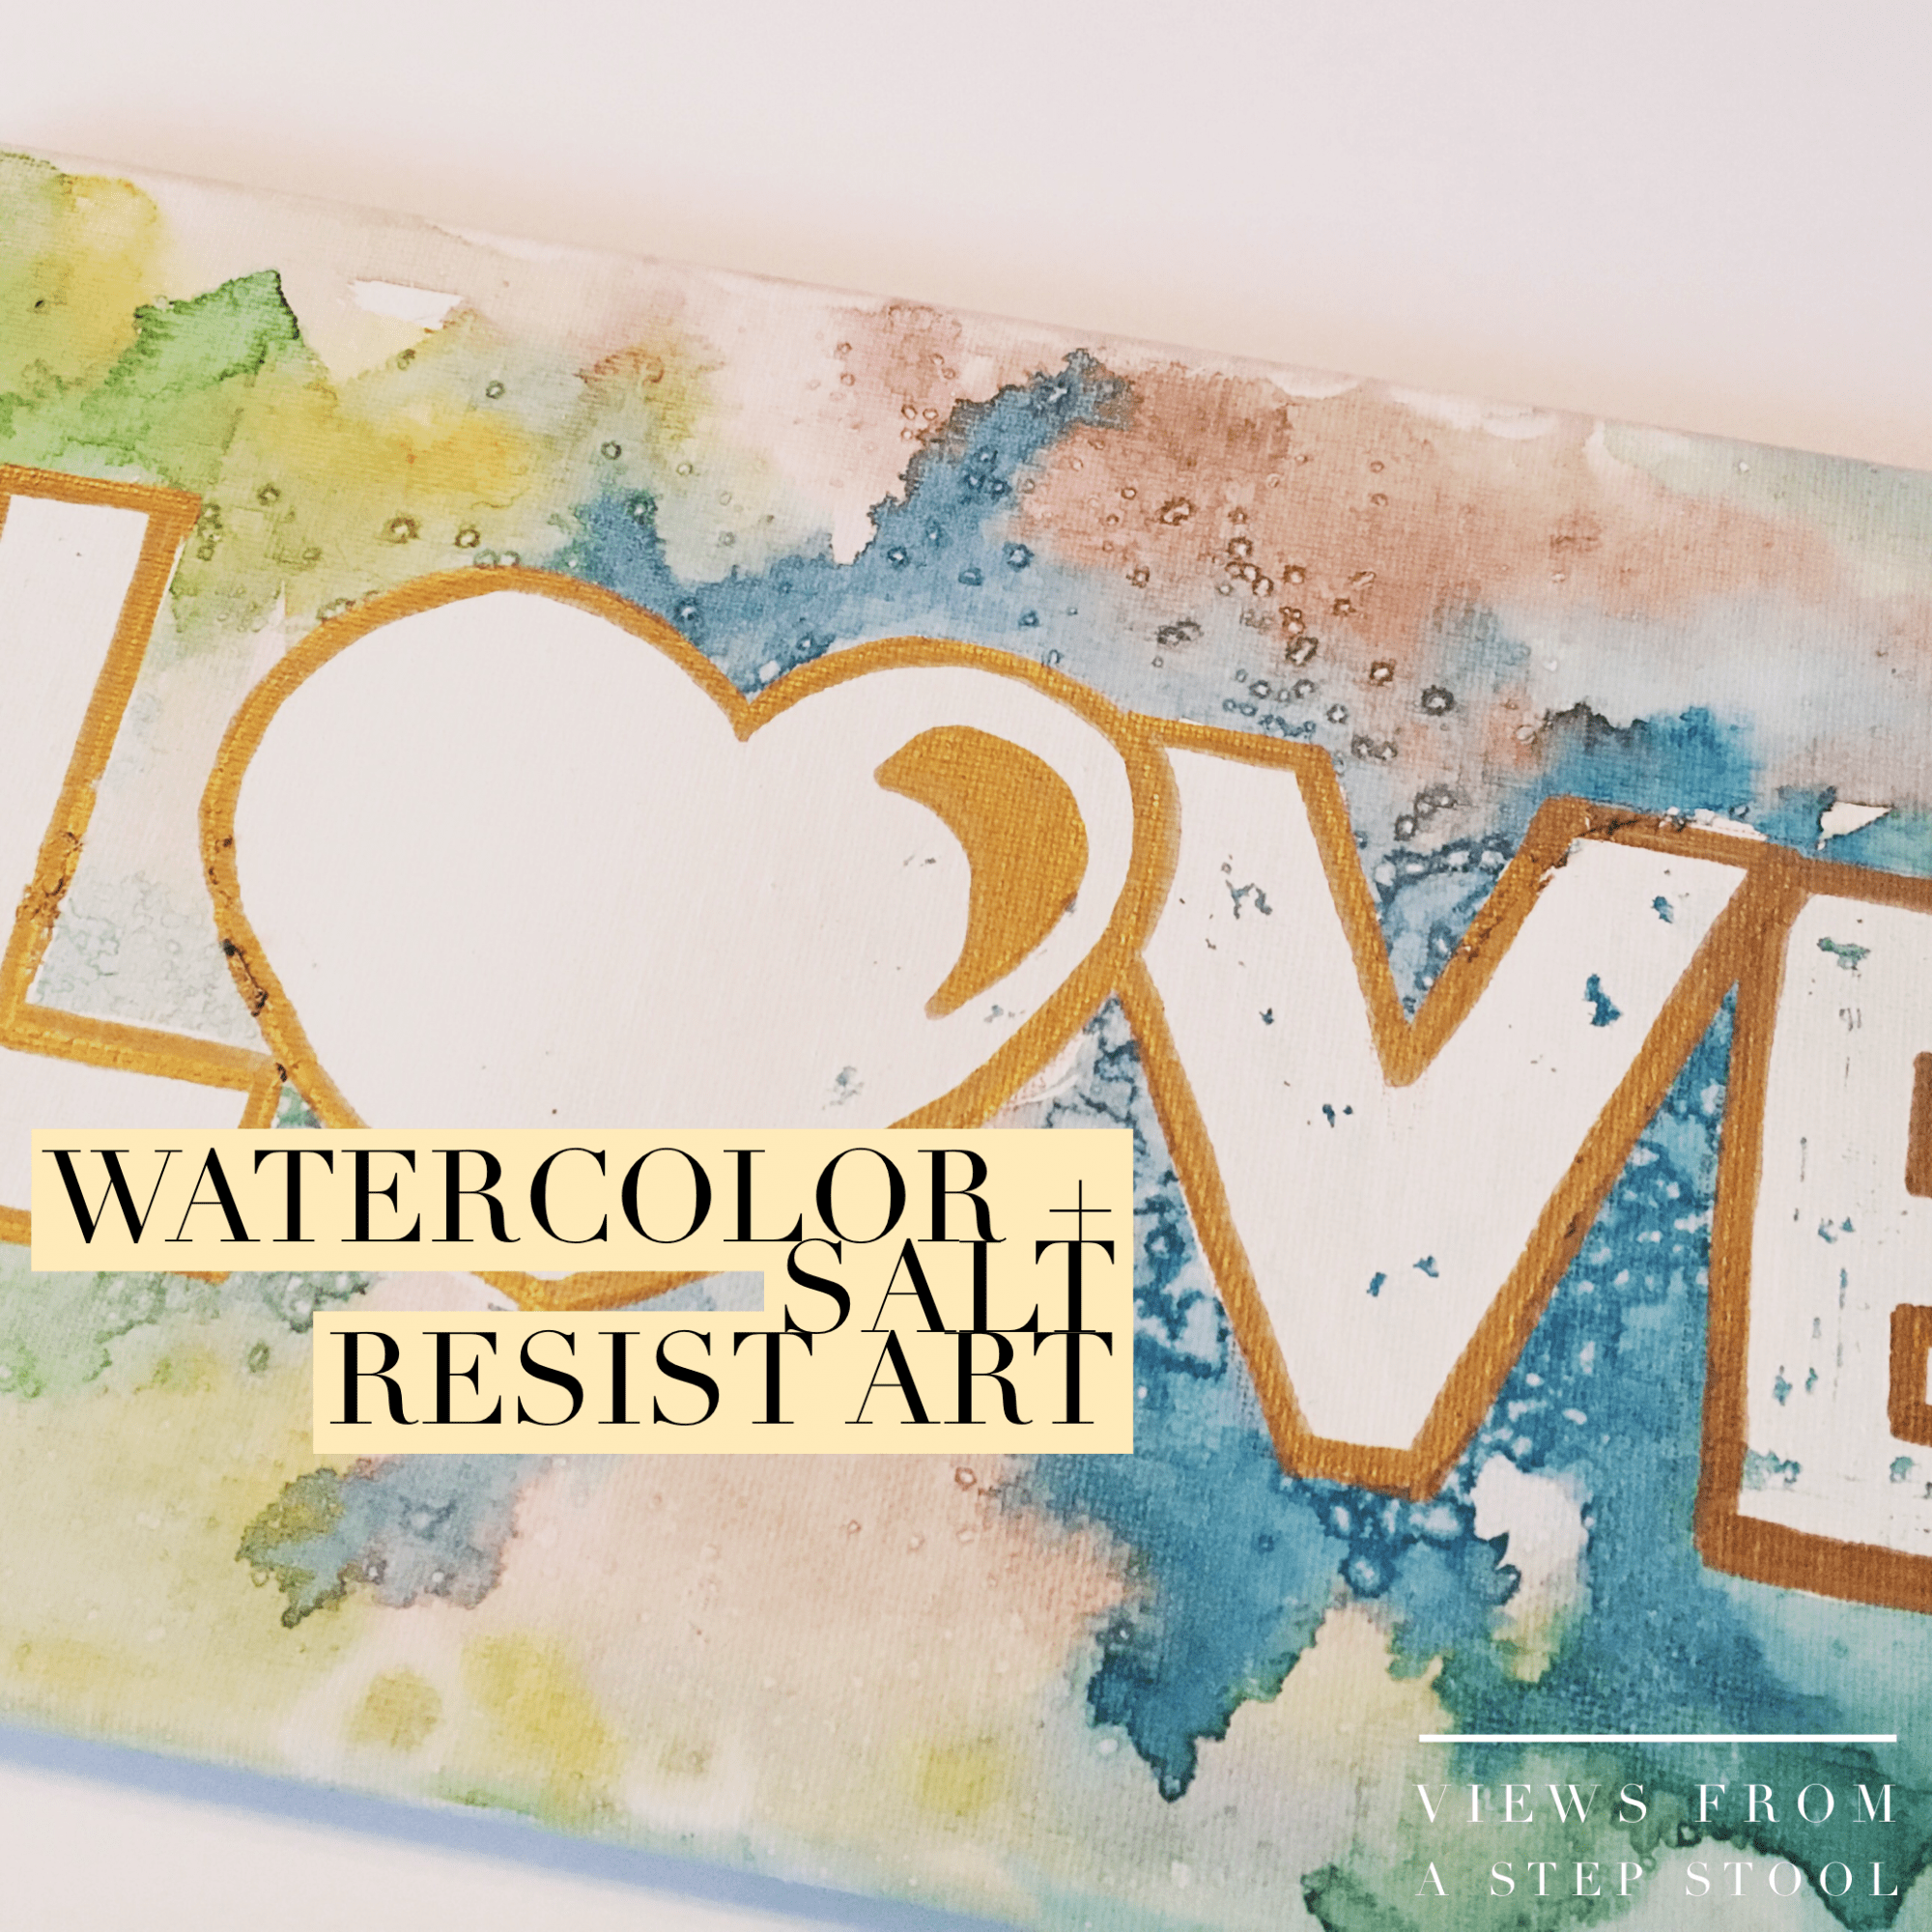 Rubber Cement and Watercolor Resist Art with a Twist!